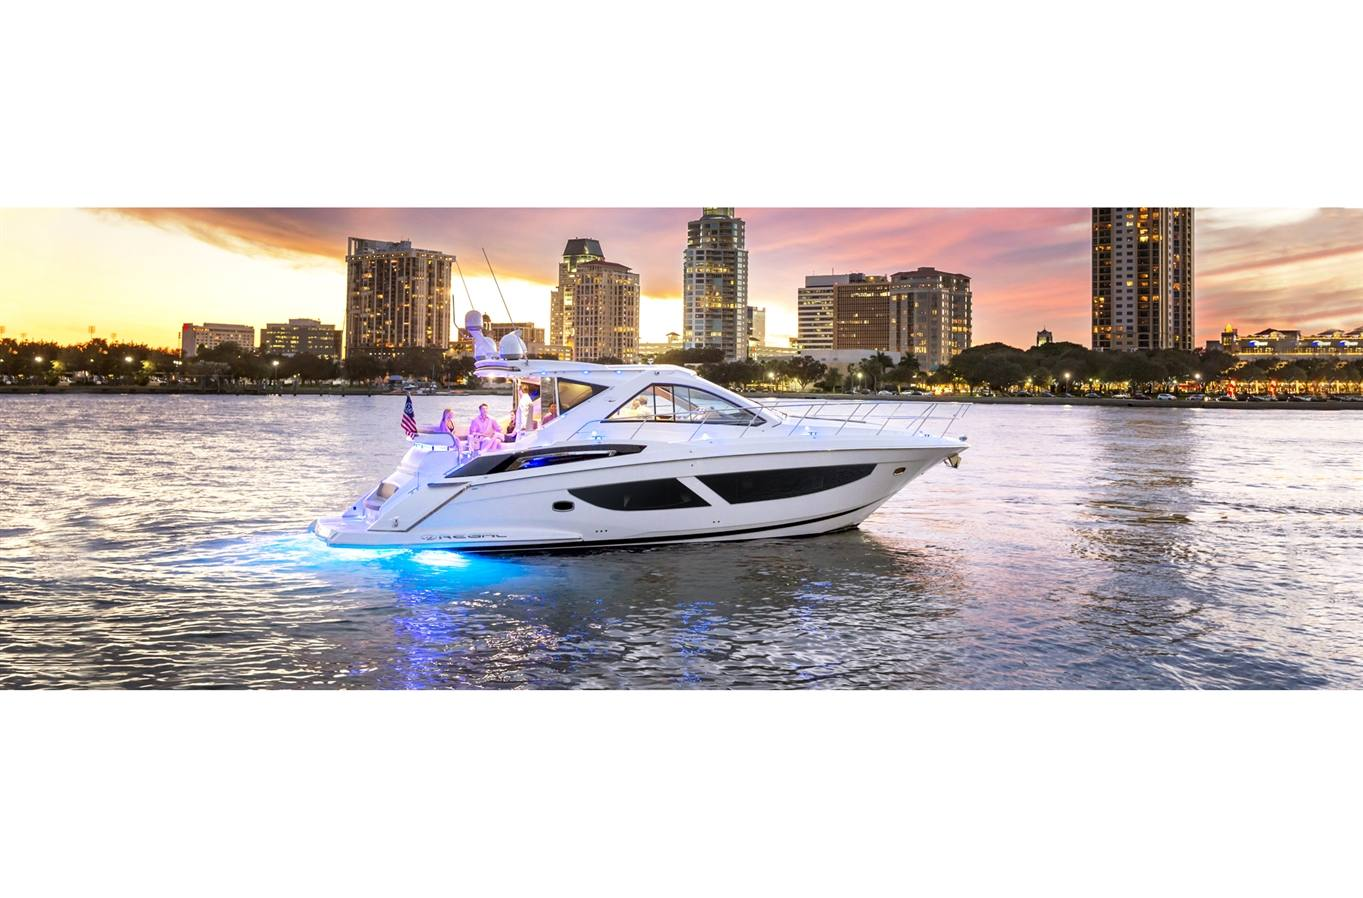 Regal Led Tv 32 Inch 2019 Regal 53 Sport Coupe For Sale In Disney Ok Cedar Port Marina